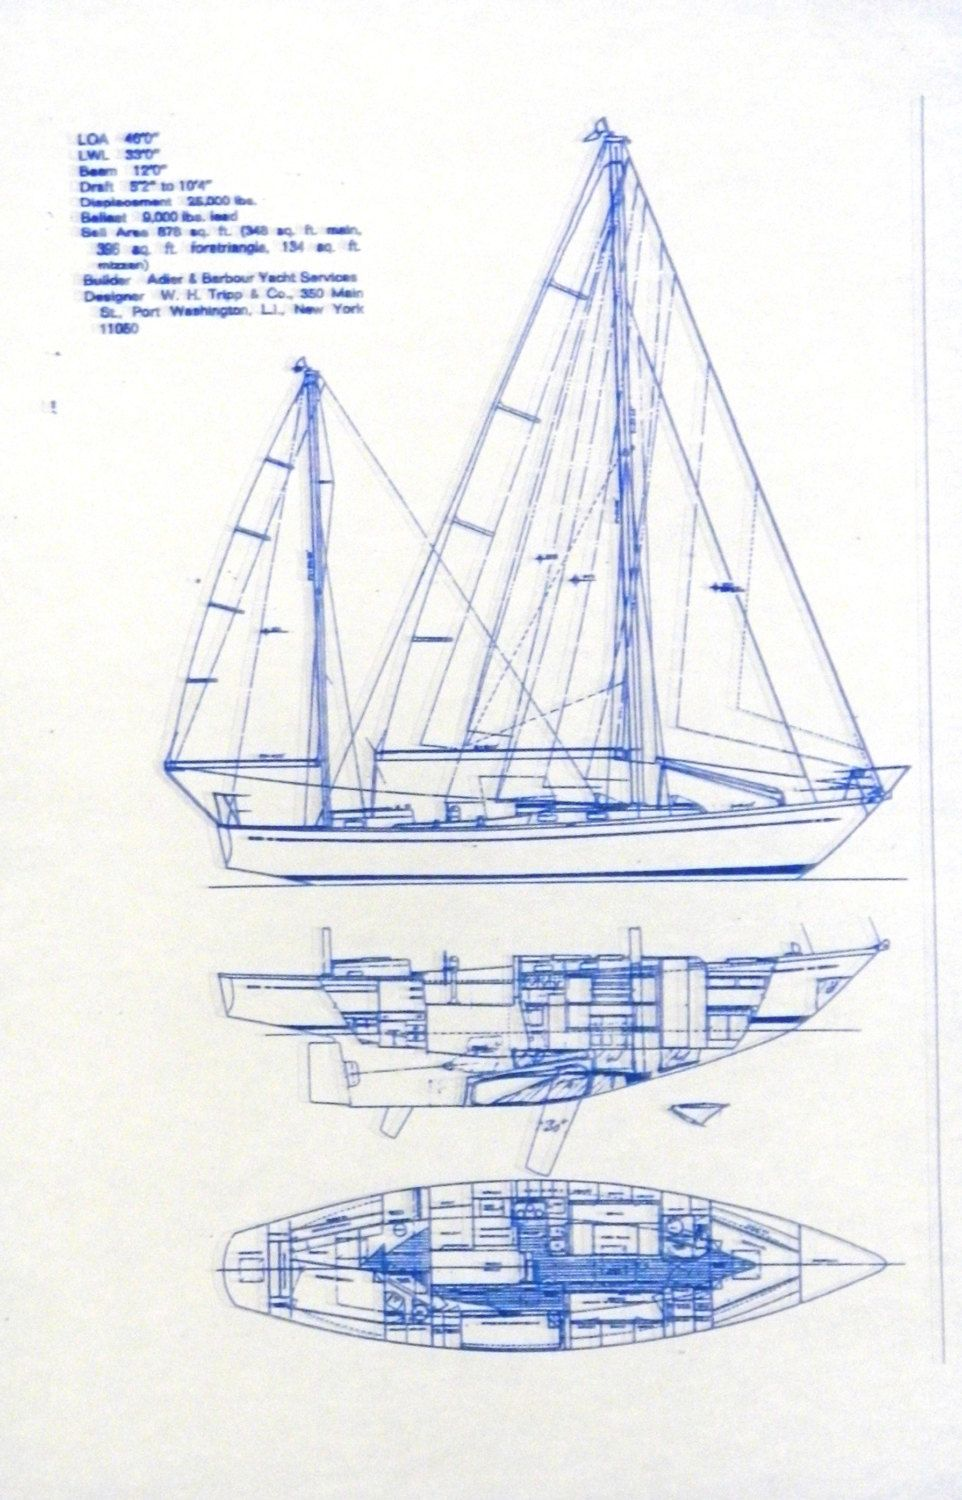 Blueprint to a full keeled yawl with a centerboard  This kind of